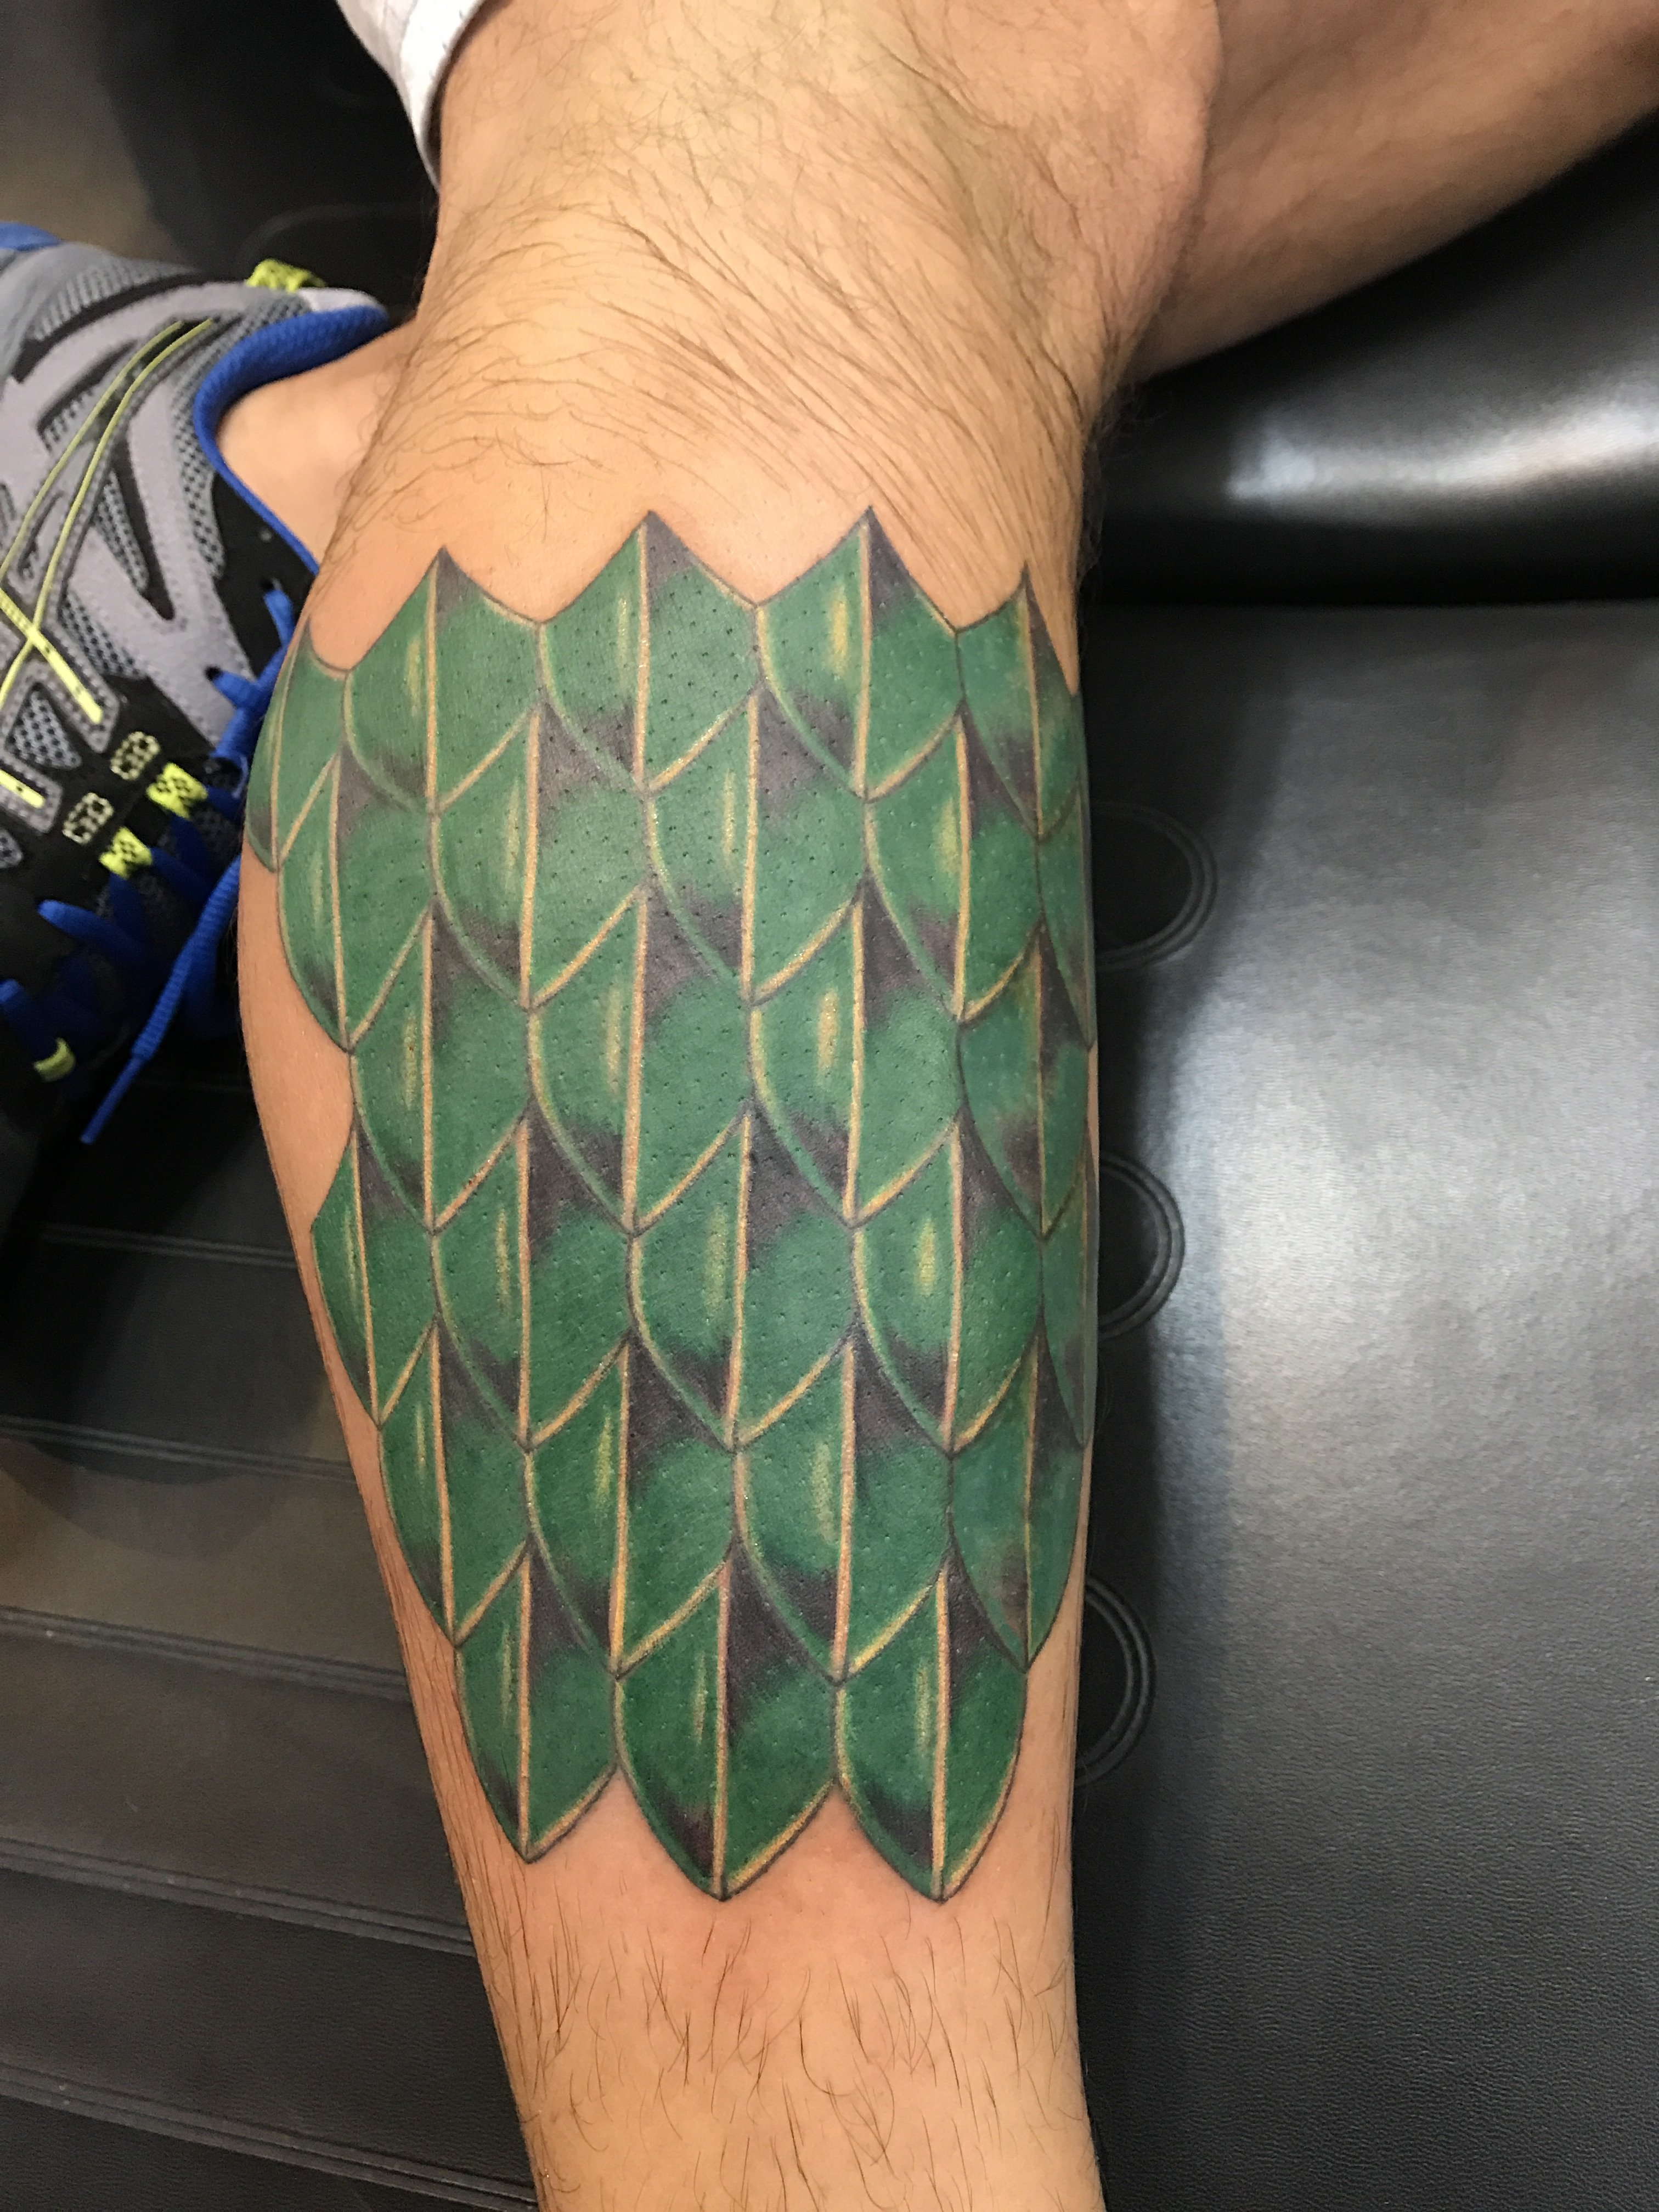 Tattoos by Chad - Unique Custom Tattoos in Indianapolis